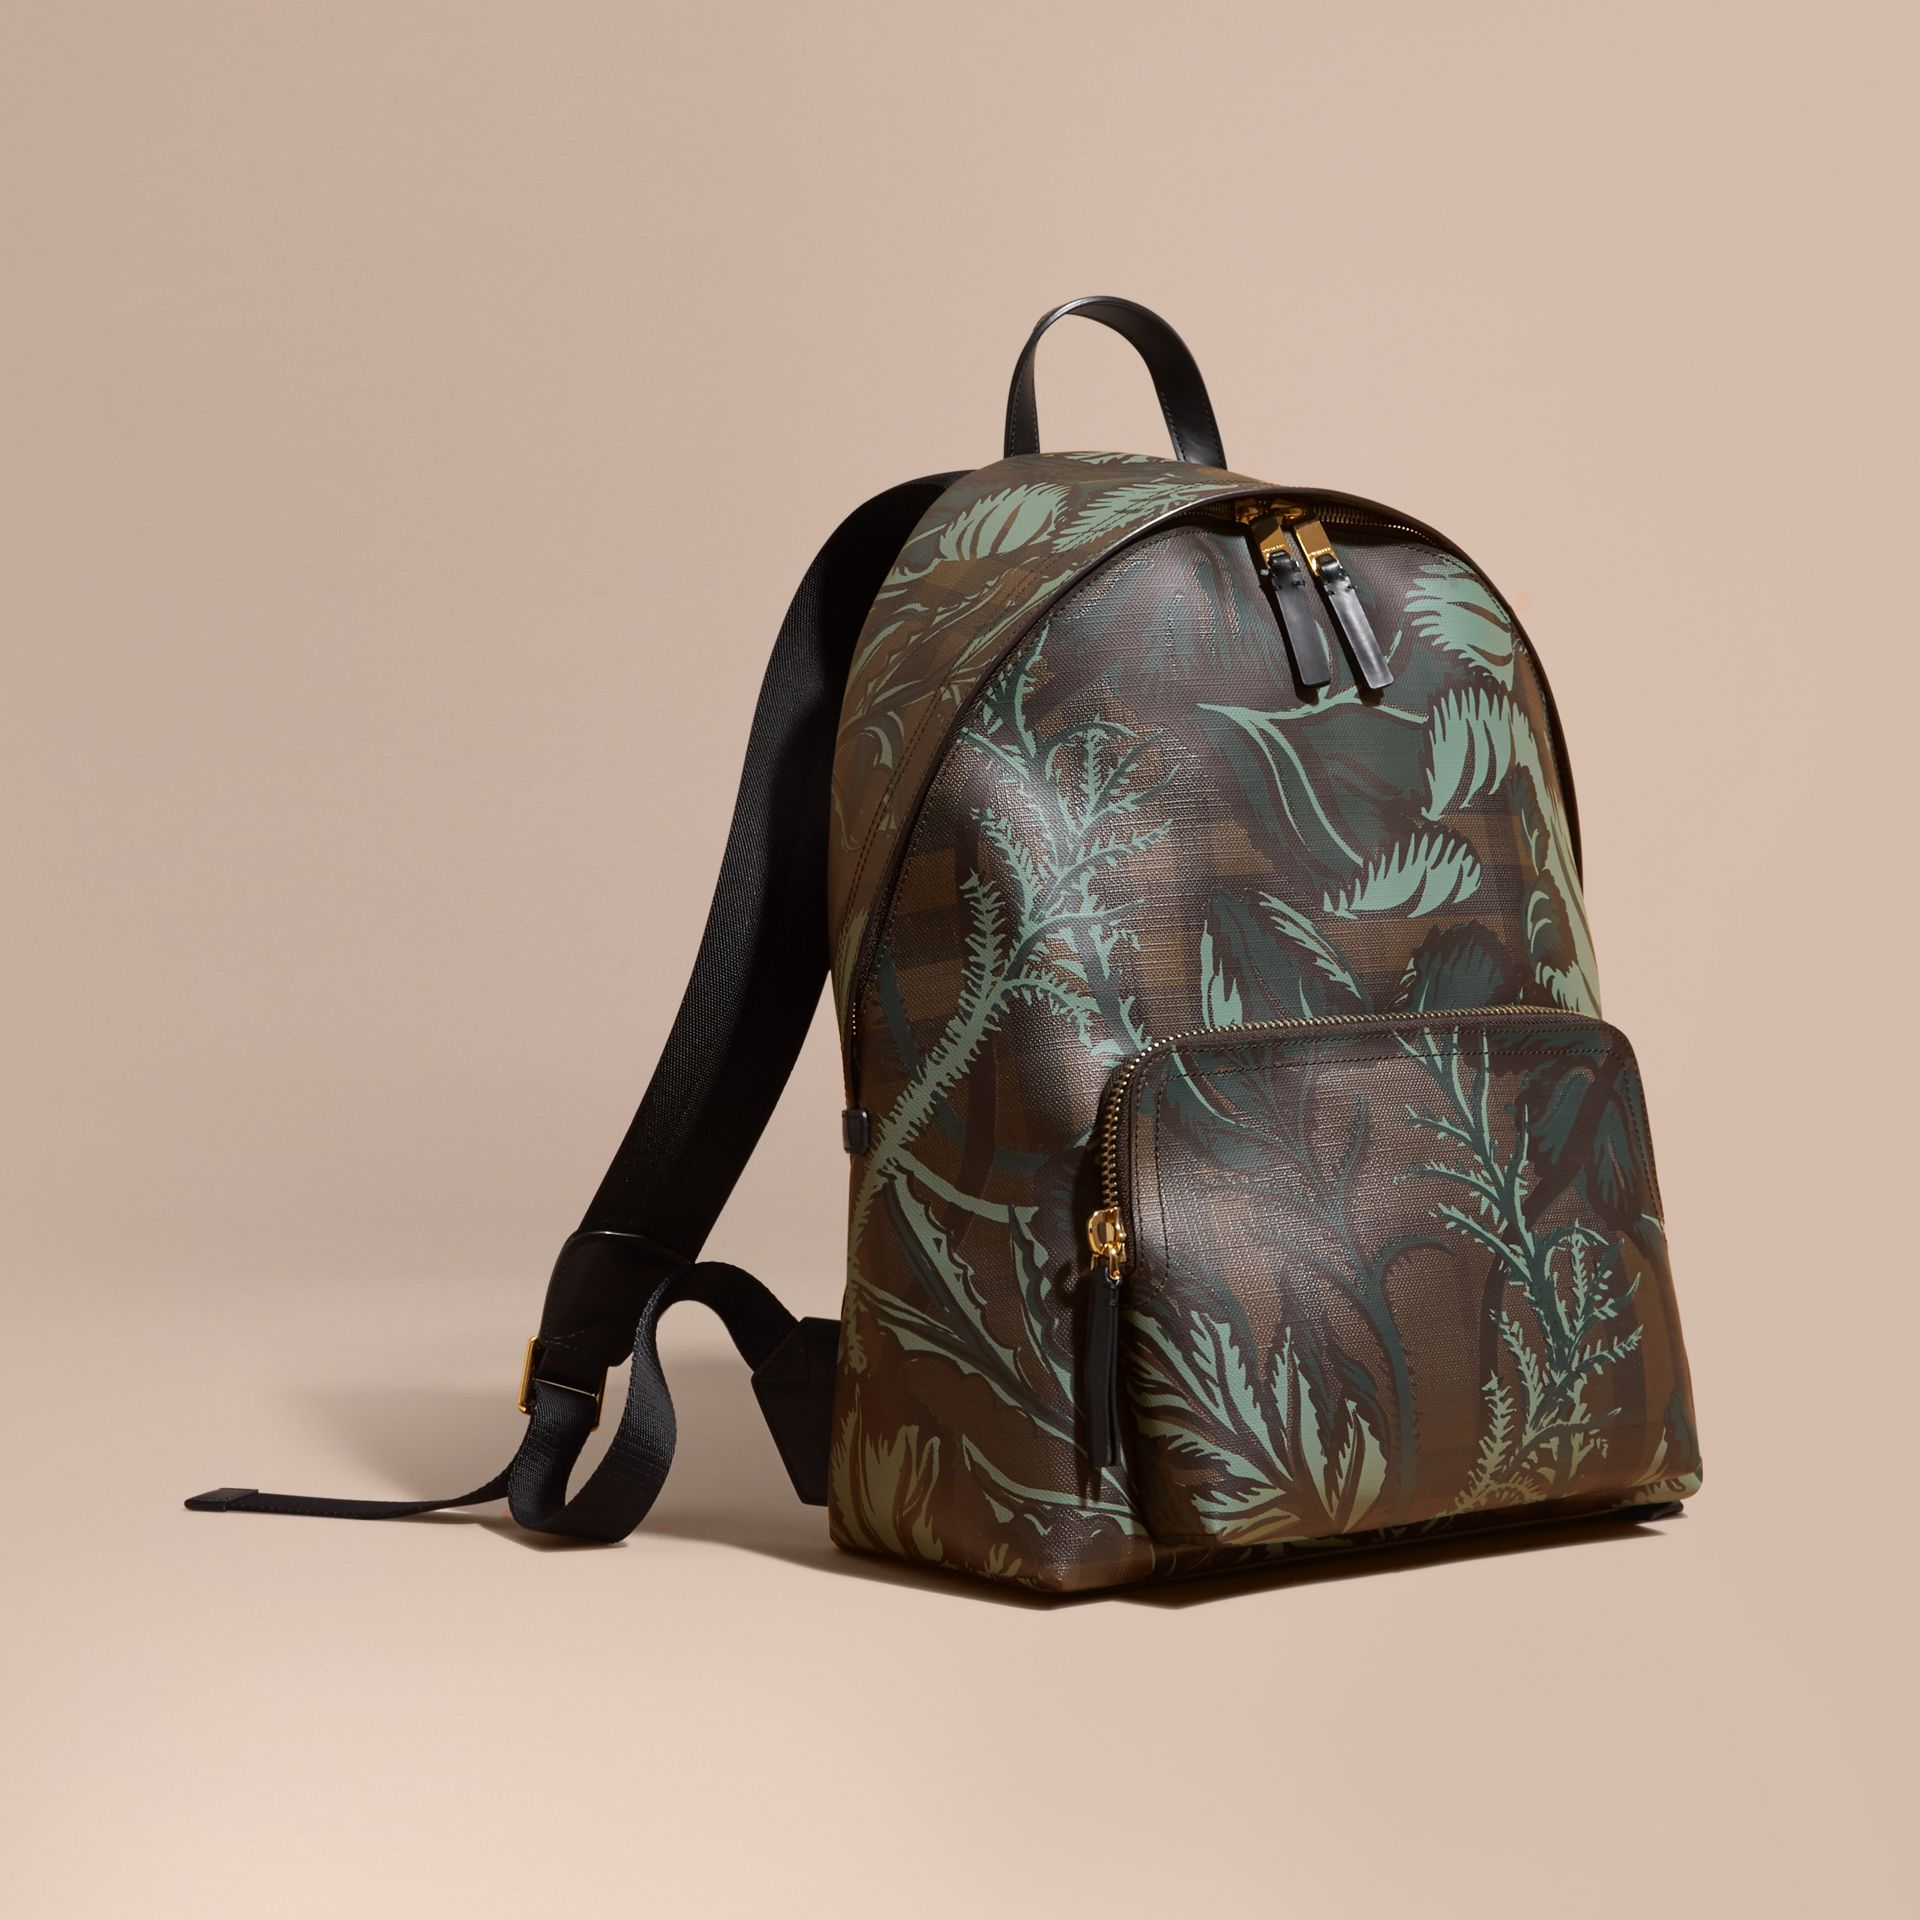 Chocolate floral Leather Trim Floral Print London Check Backpack Chocolate - gallery image 1